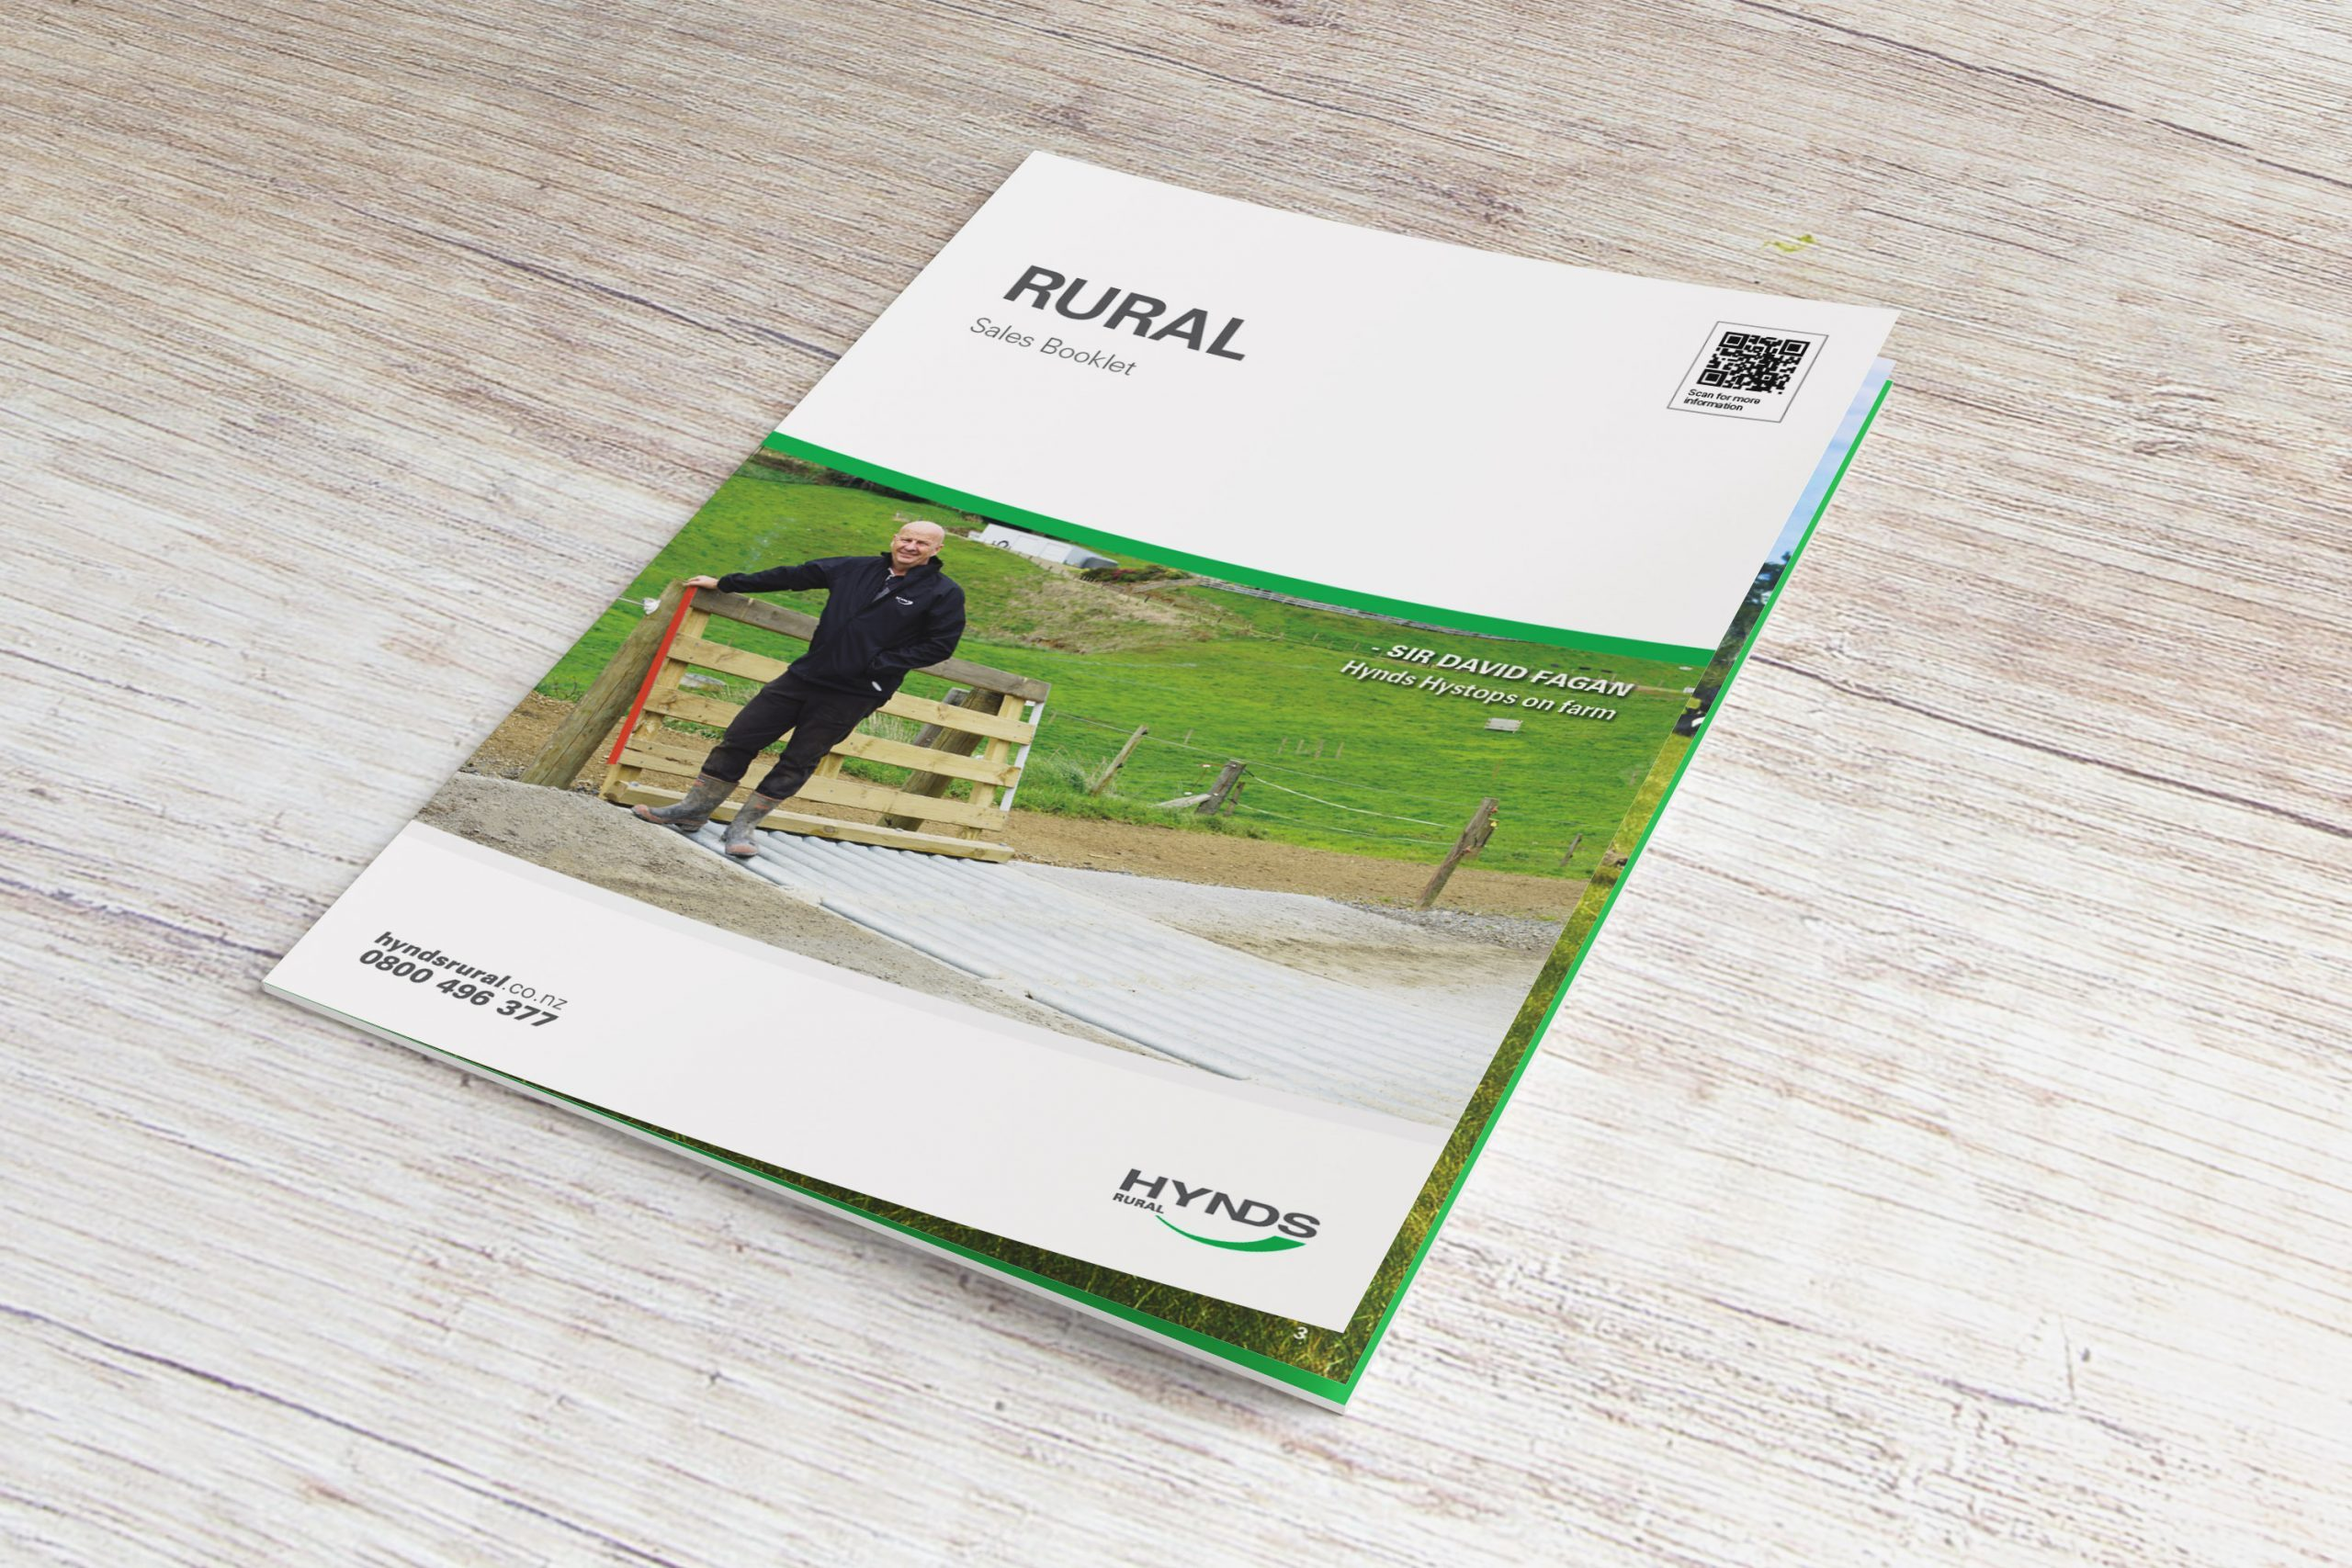 Rural Sales Book